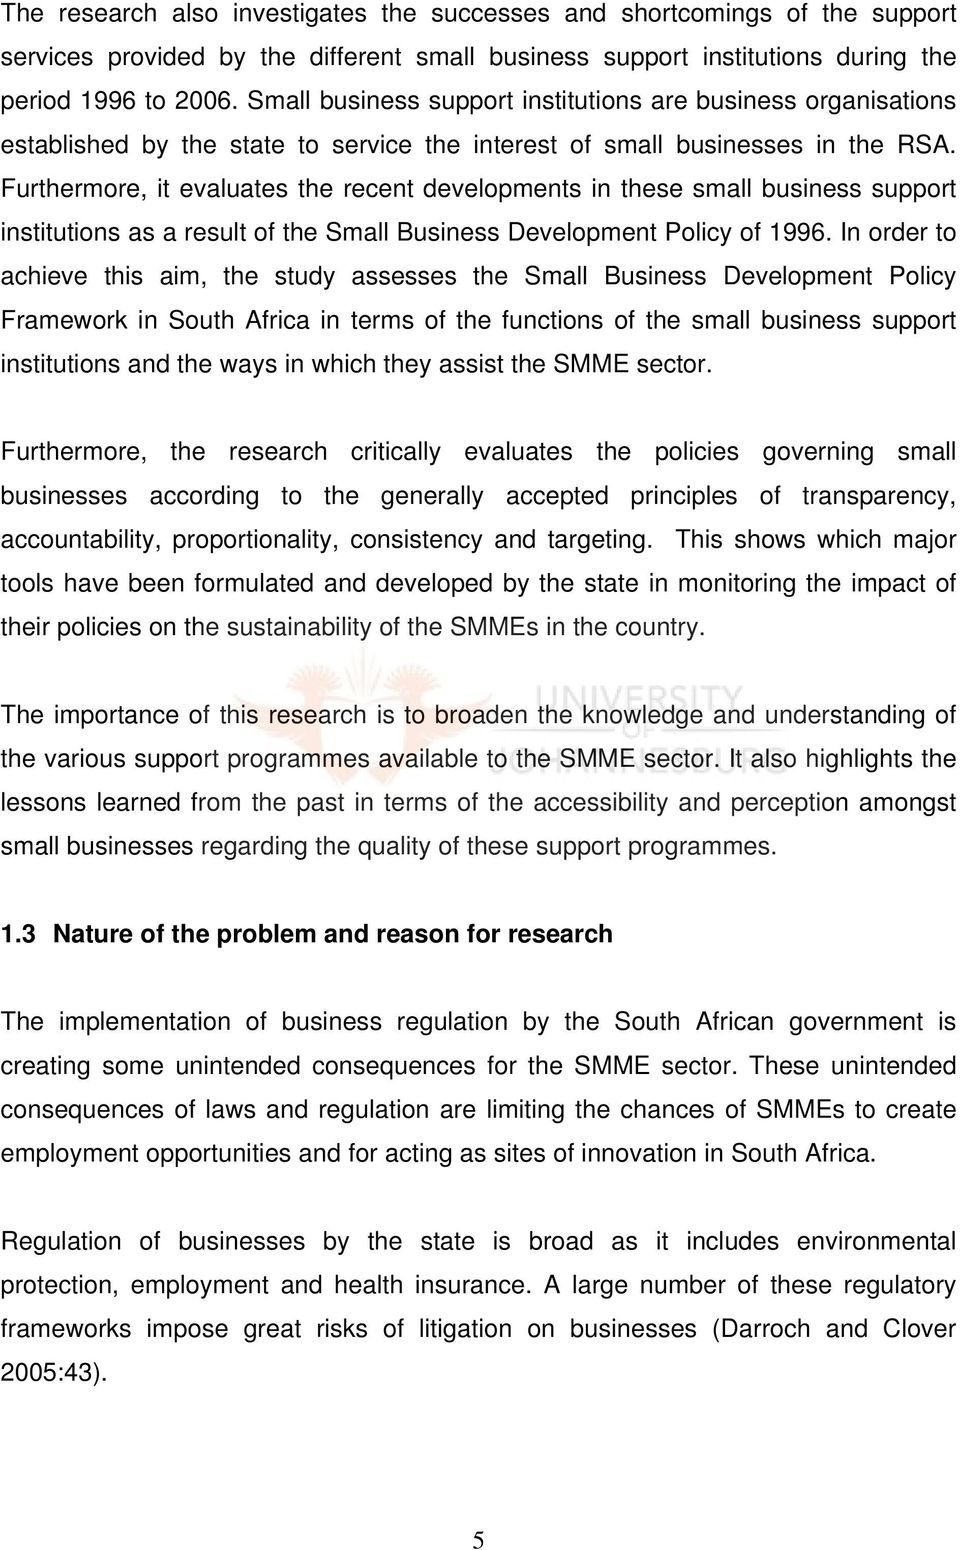 Furthermore, it evaluates the recent developments in these small business support institutions as a result of the Small Business Development Policy of 1996.